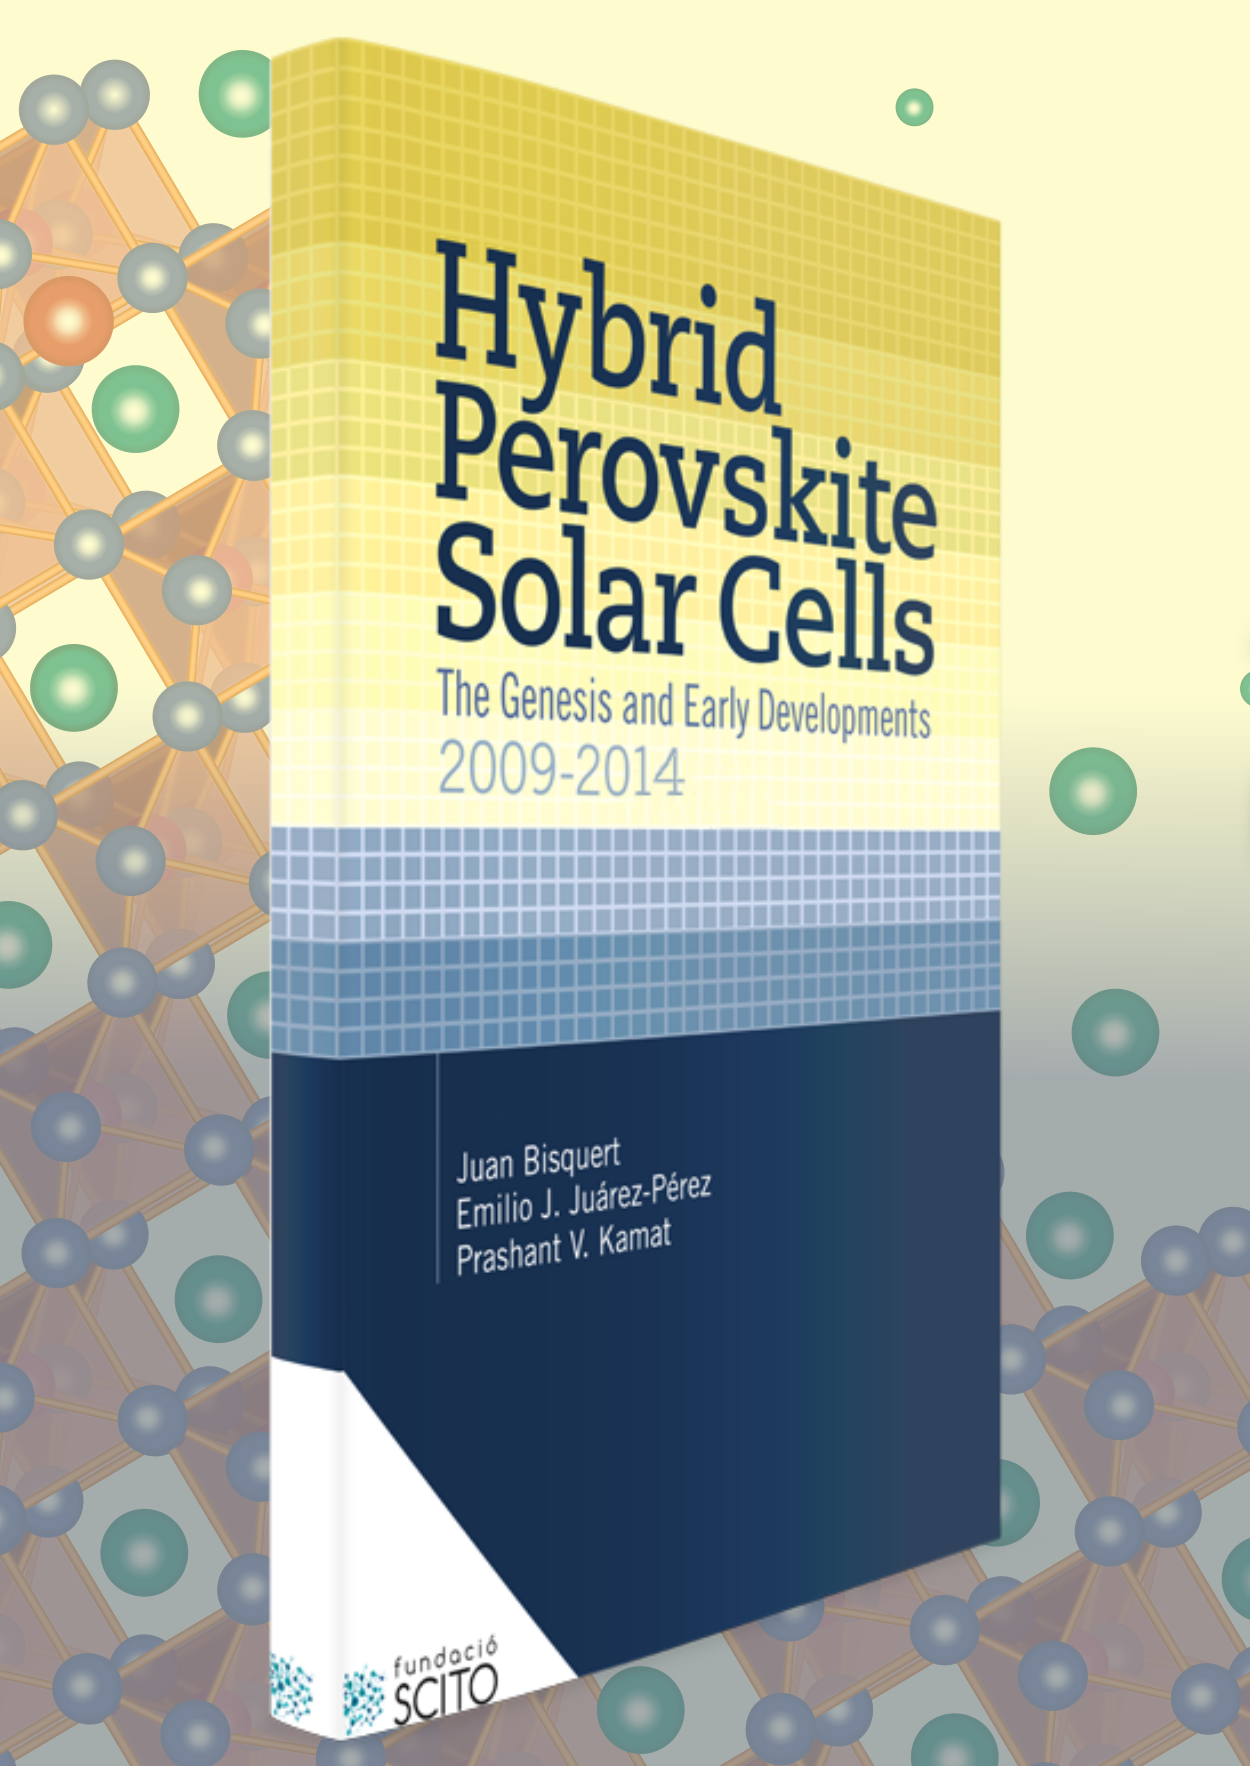 Hybrid Perovskite Solar Cells. The Genesis and Early Developments. 2009-2014